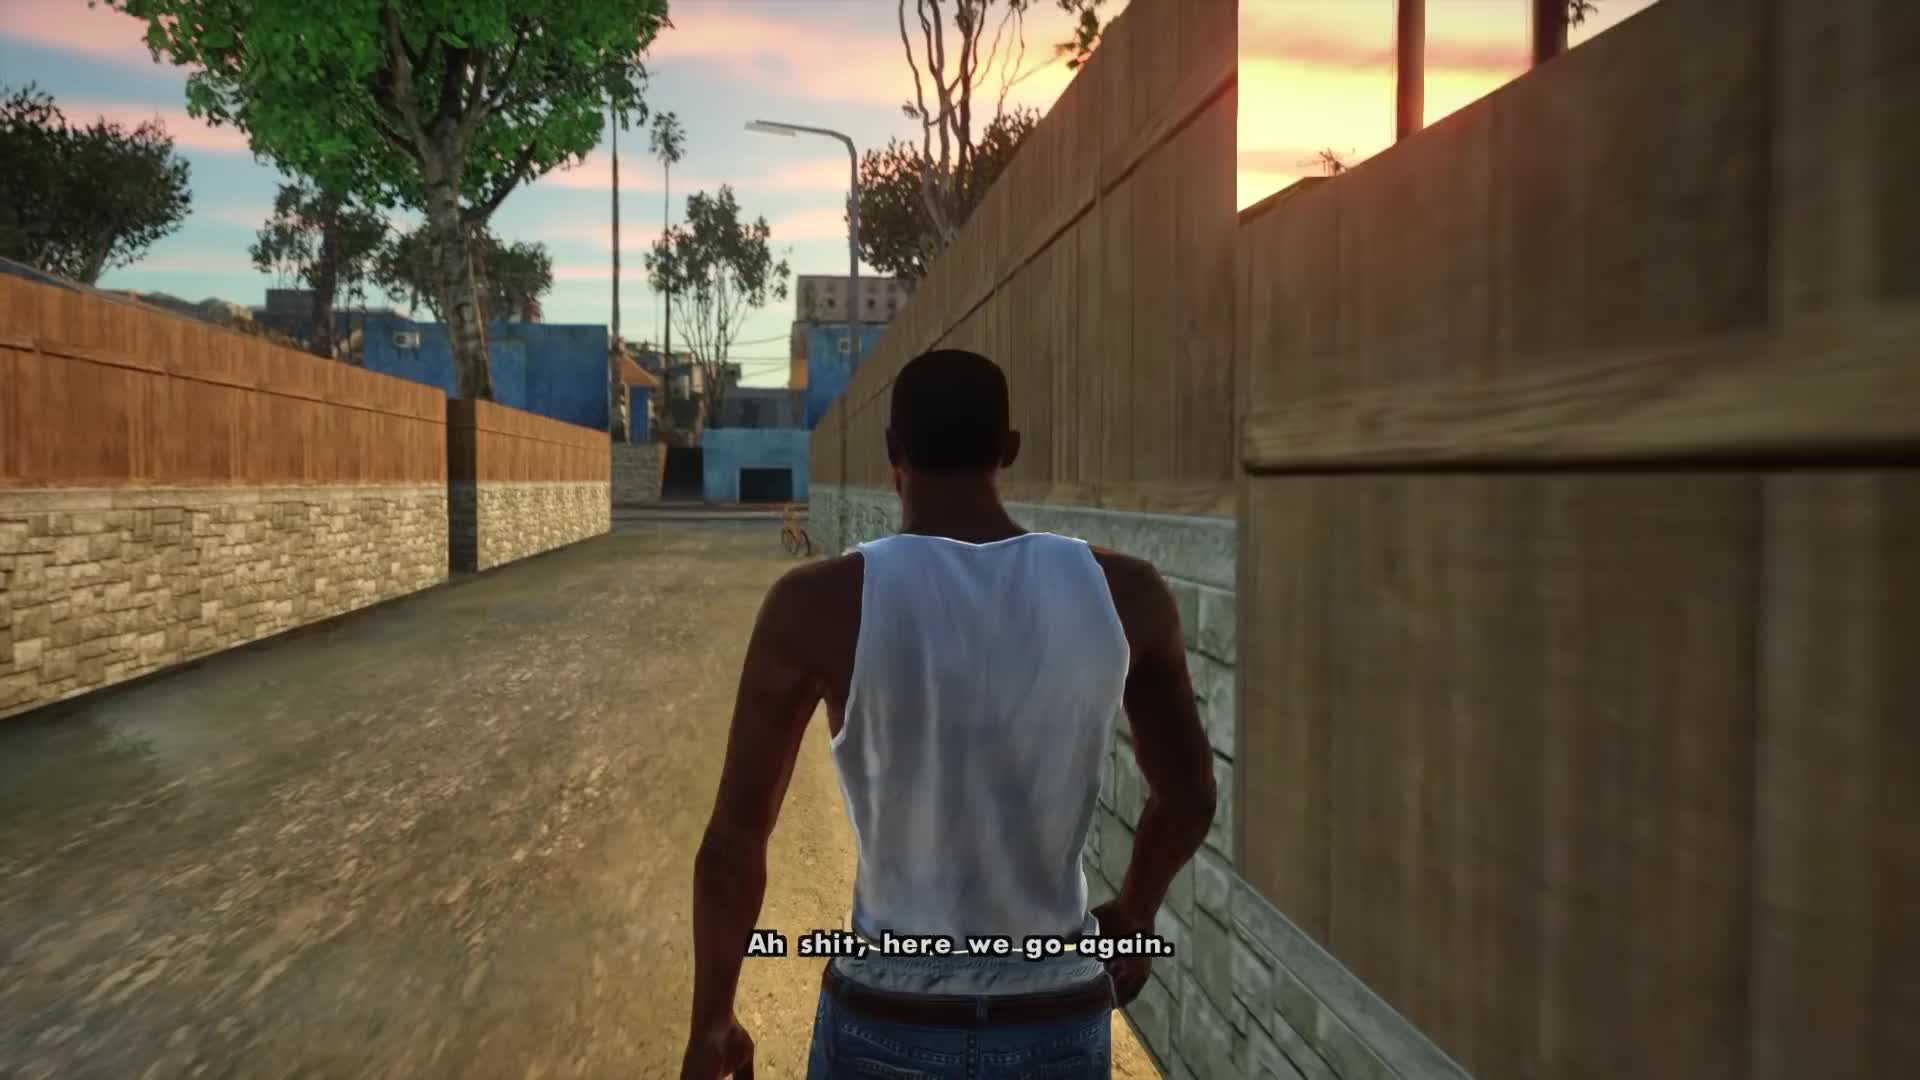 Grand Theft Auto V Mods Gifs Search | Search & Share on Homdor